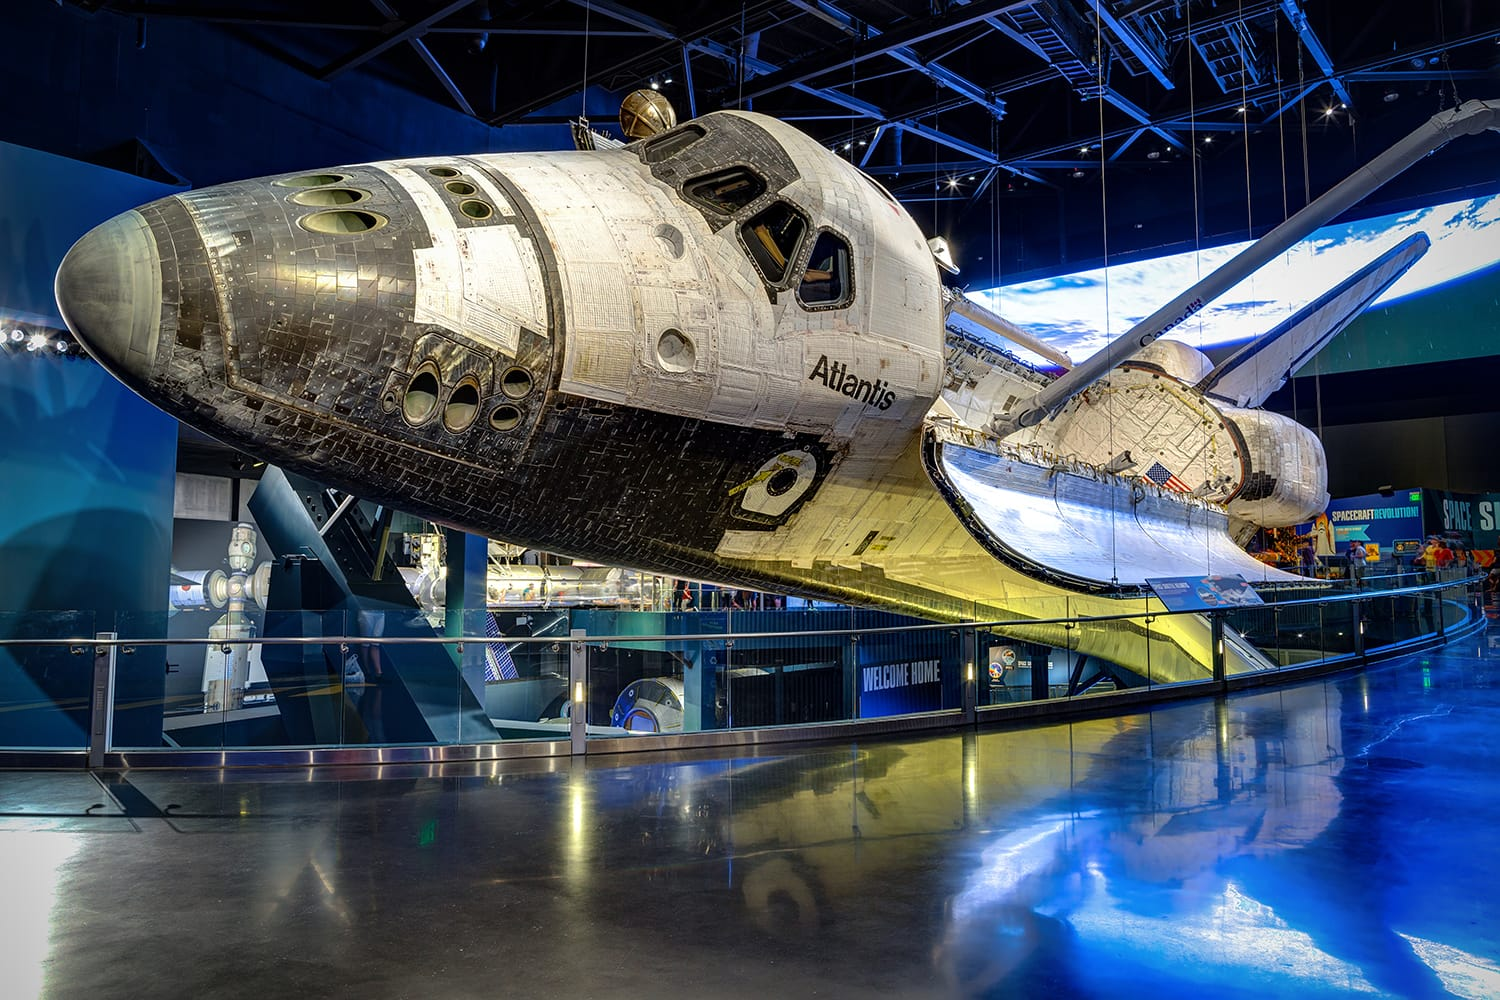 Space Shuttle Atlantis which is exhibited at the visitor complex of Kennedy Space Center, Florida, United States